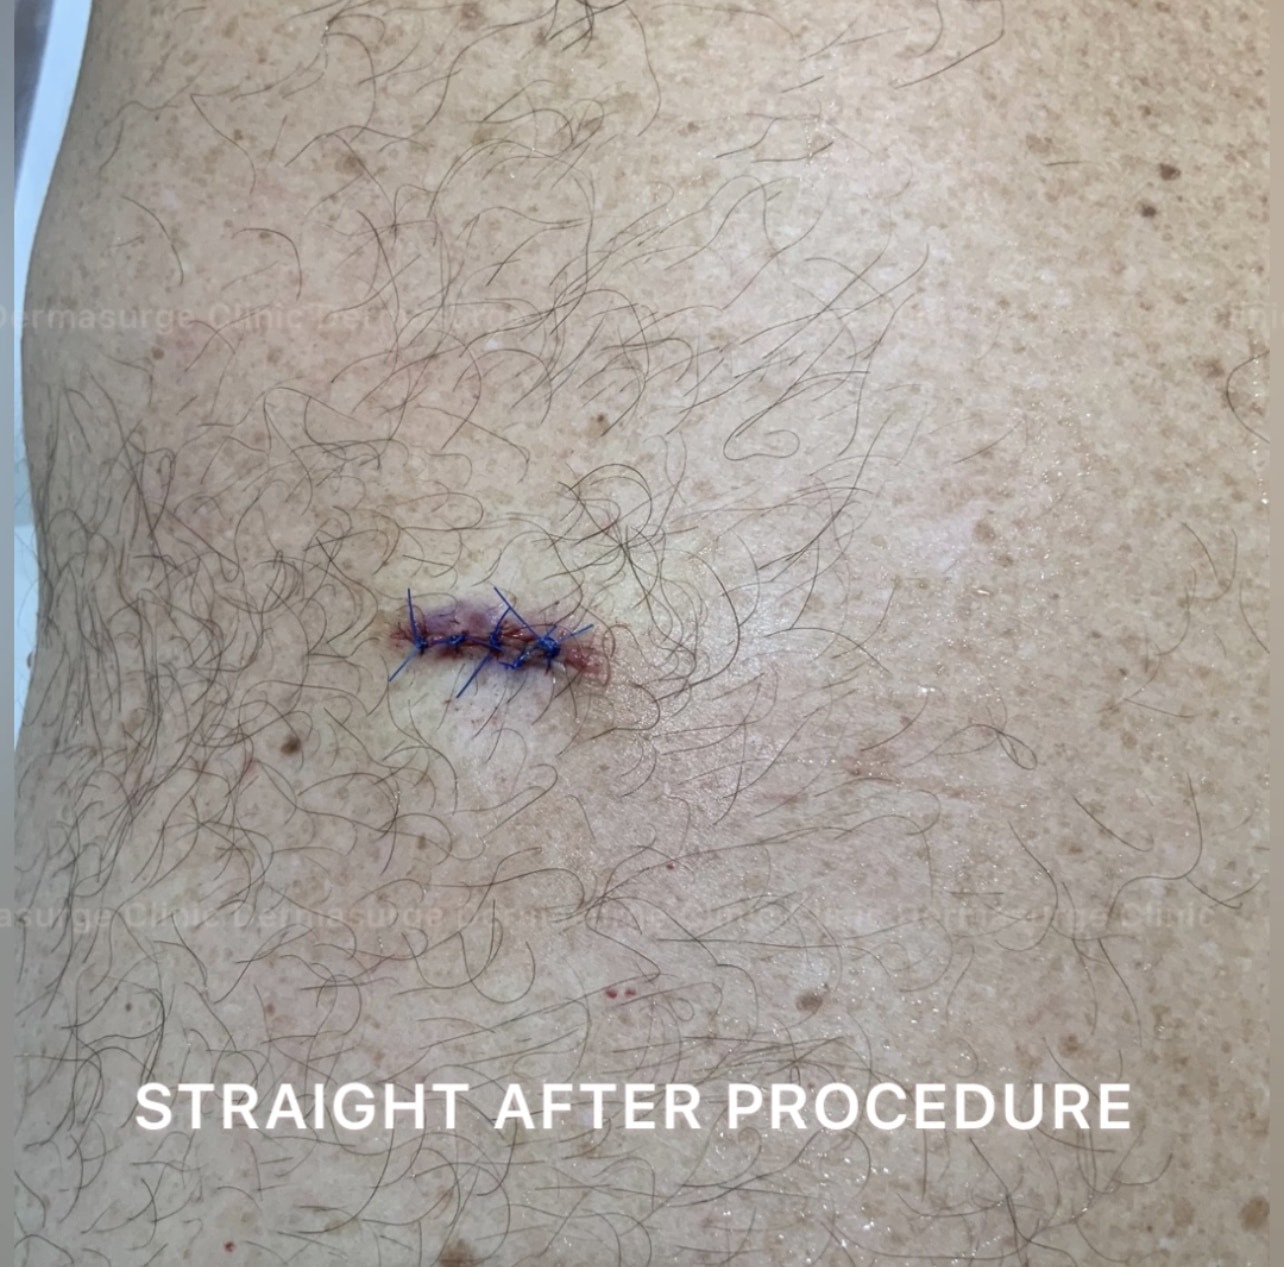 cyst: straight after procedure